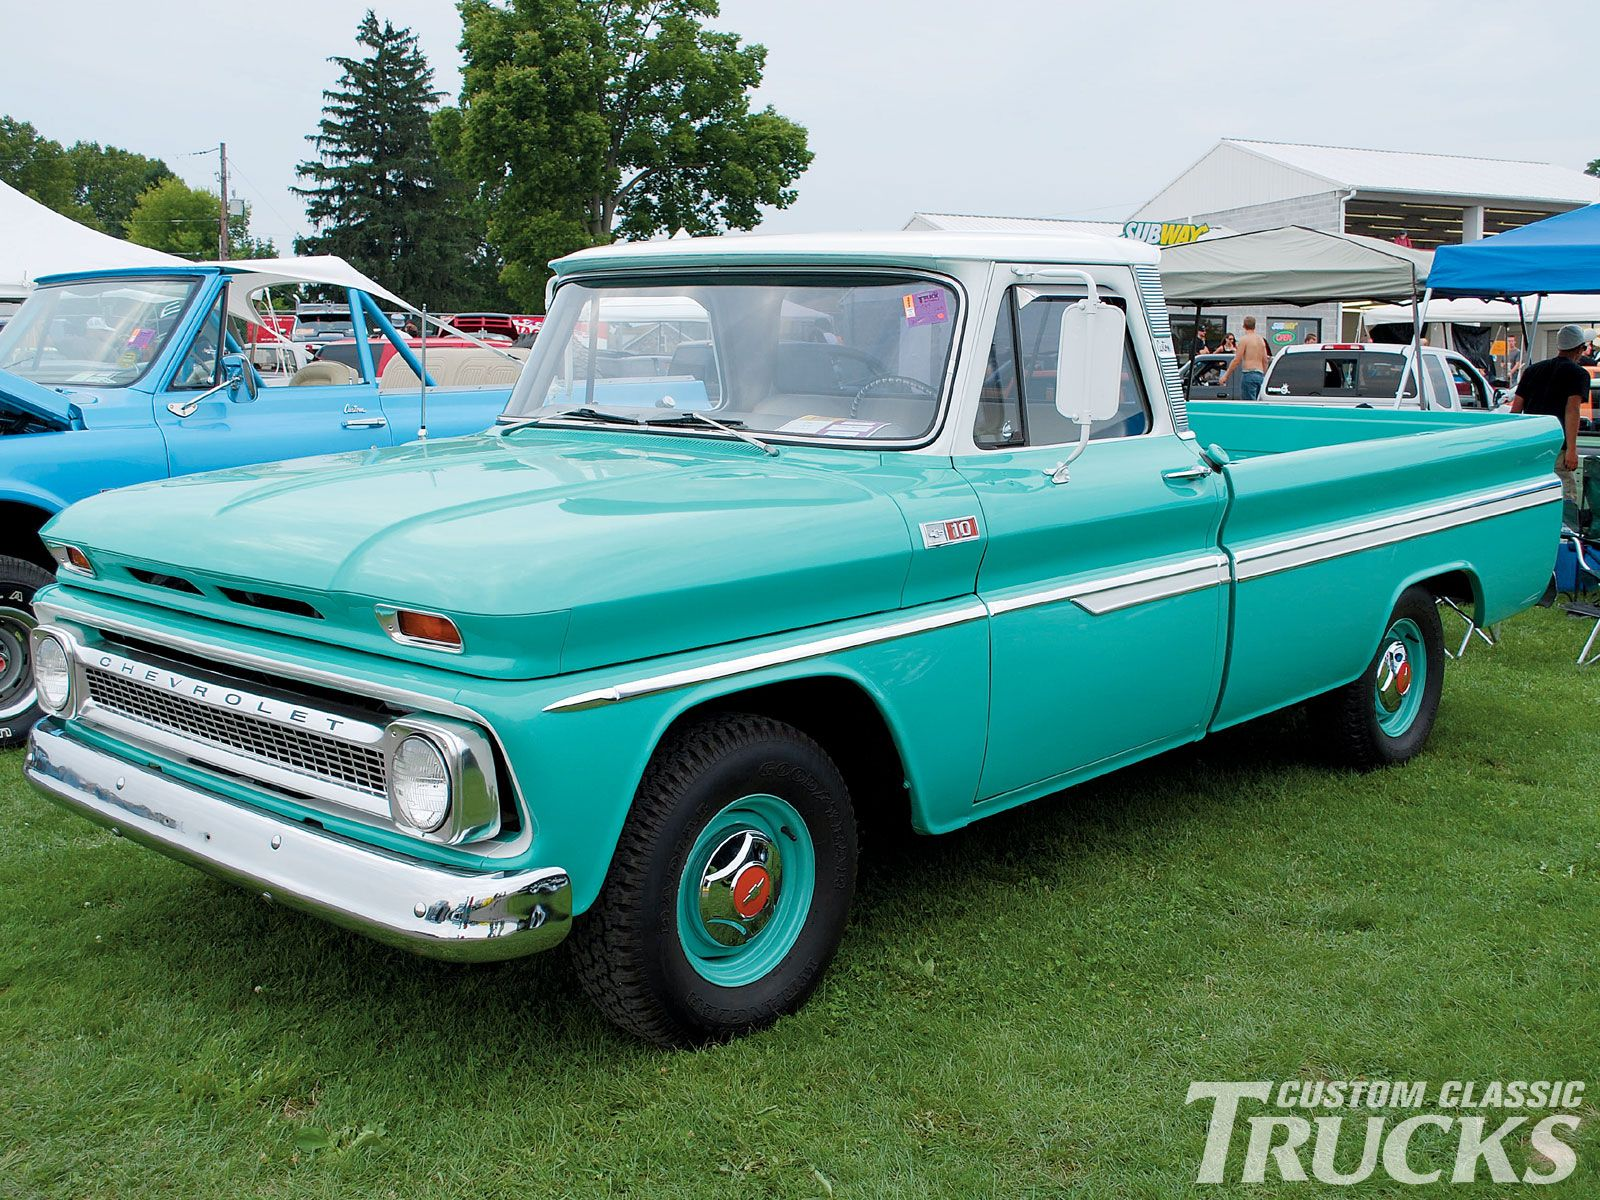 1966 Gmc Truck Interior - Viewing Gallery | '64-'66 chevy